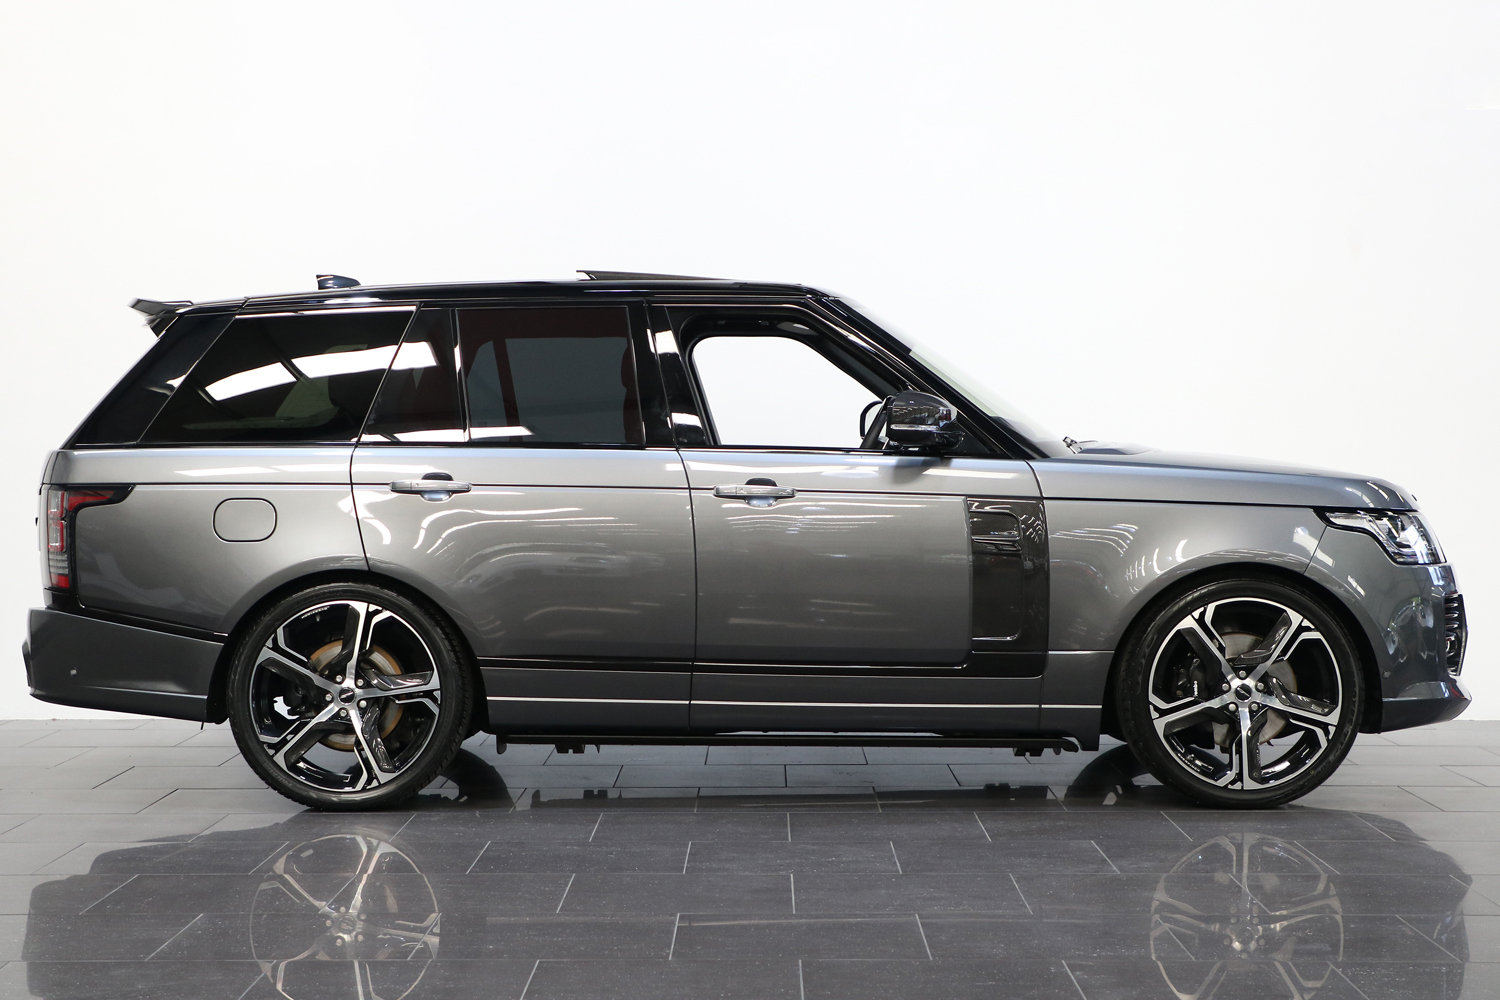 2017 67 RANGE ROVER 4.4 SDV8 AUTOBIOGRAPHY OVERFINCH AUTO  For Sale (picture 2 of 6)